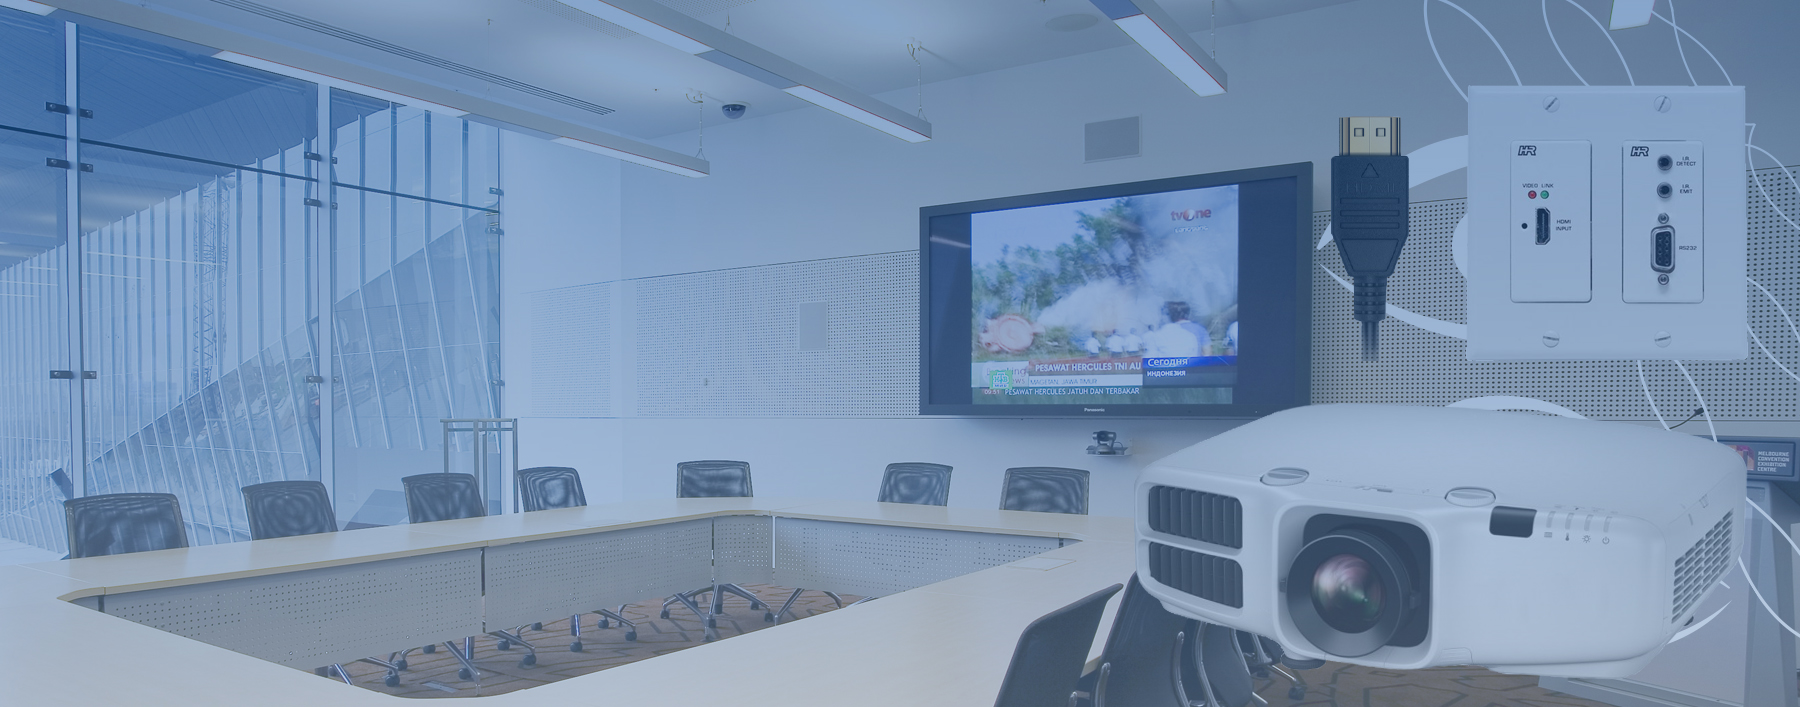 Pro Video, Conference Room, Board Room, Education